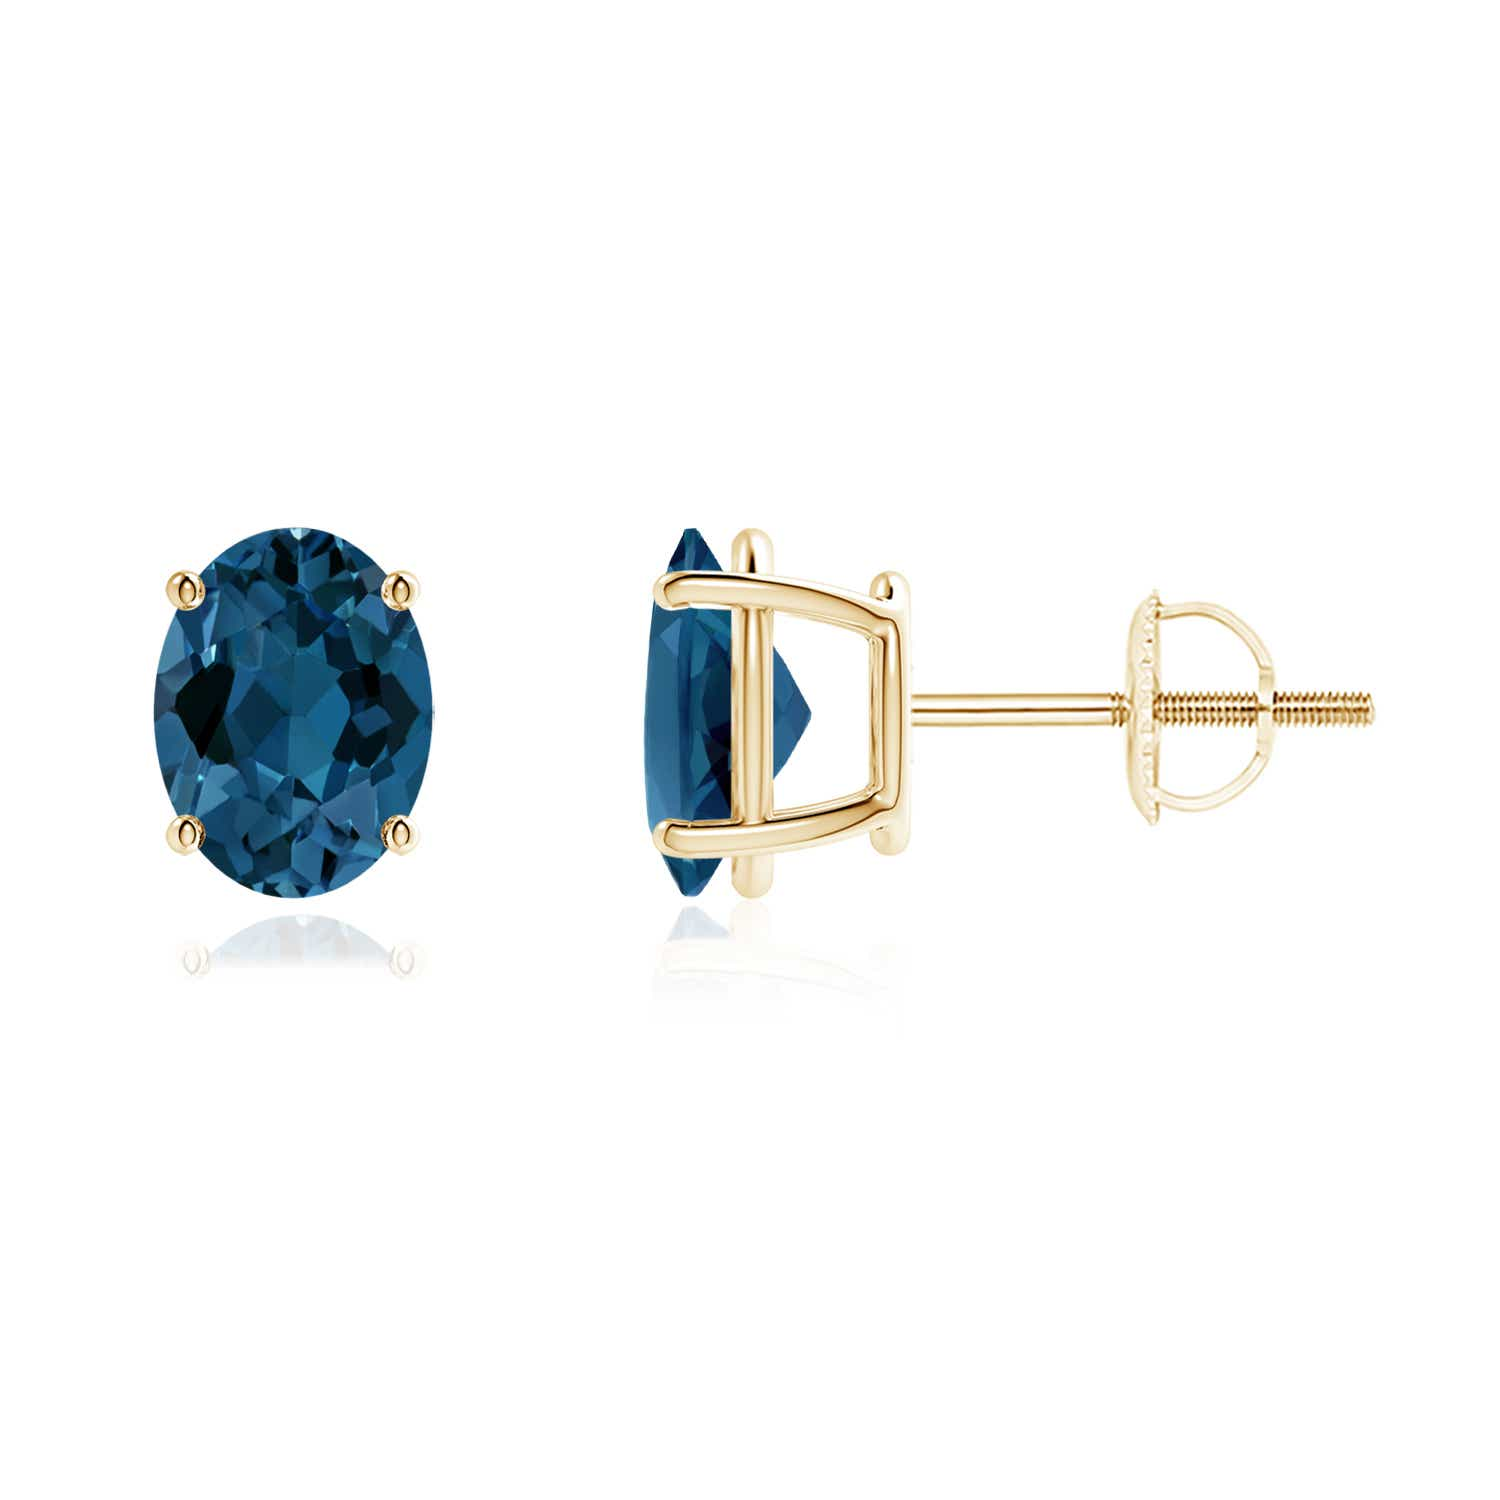 Angara Natural London Blue Topaz Stud Earrings in White Gold xKkFBF8